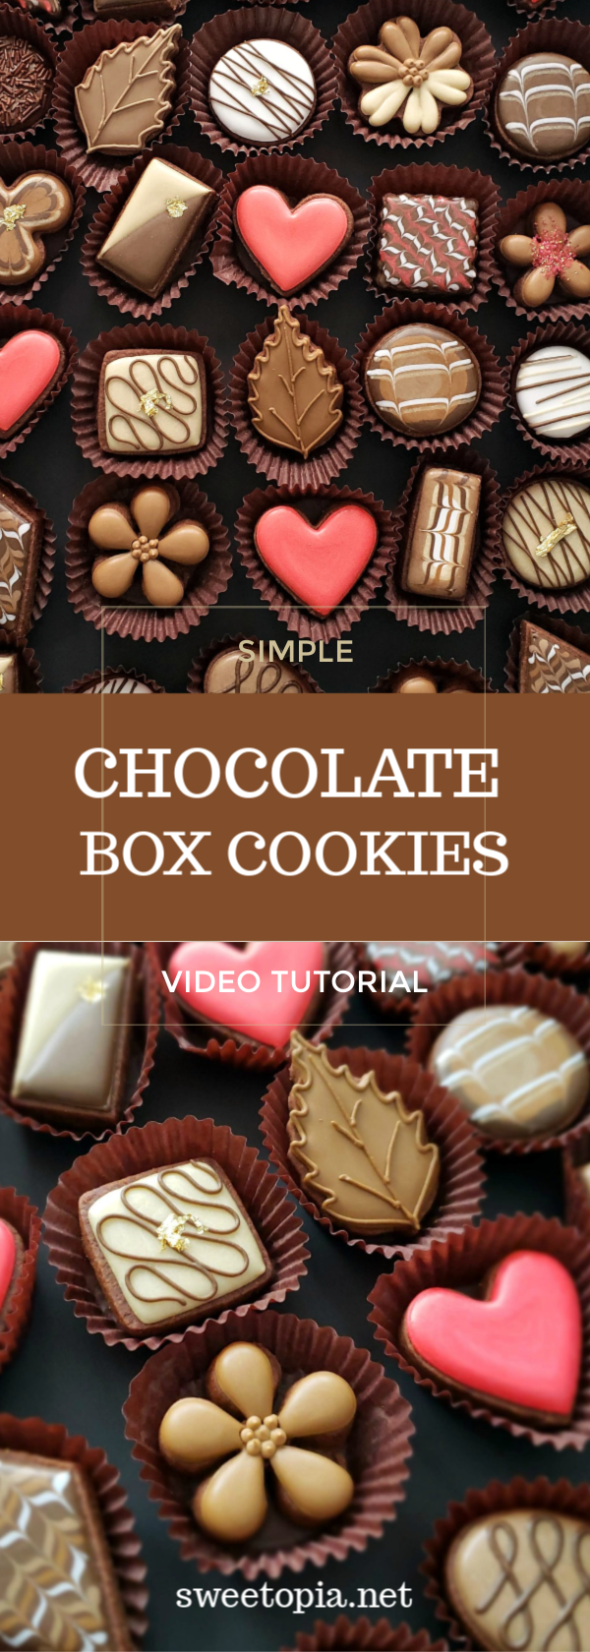 Chocolate Sugar Cookies Box of Chocolate Cookies Video Tutorial